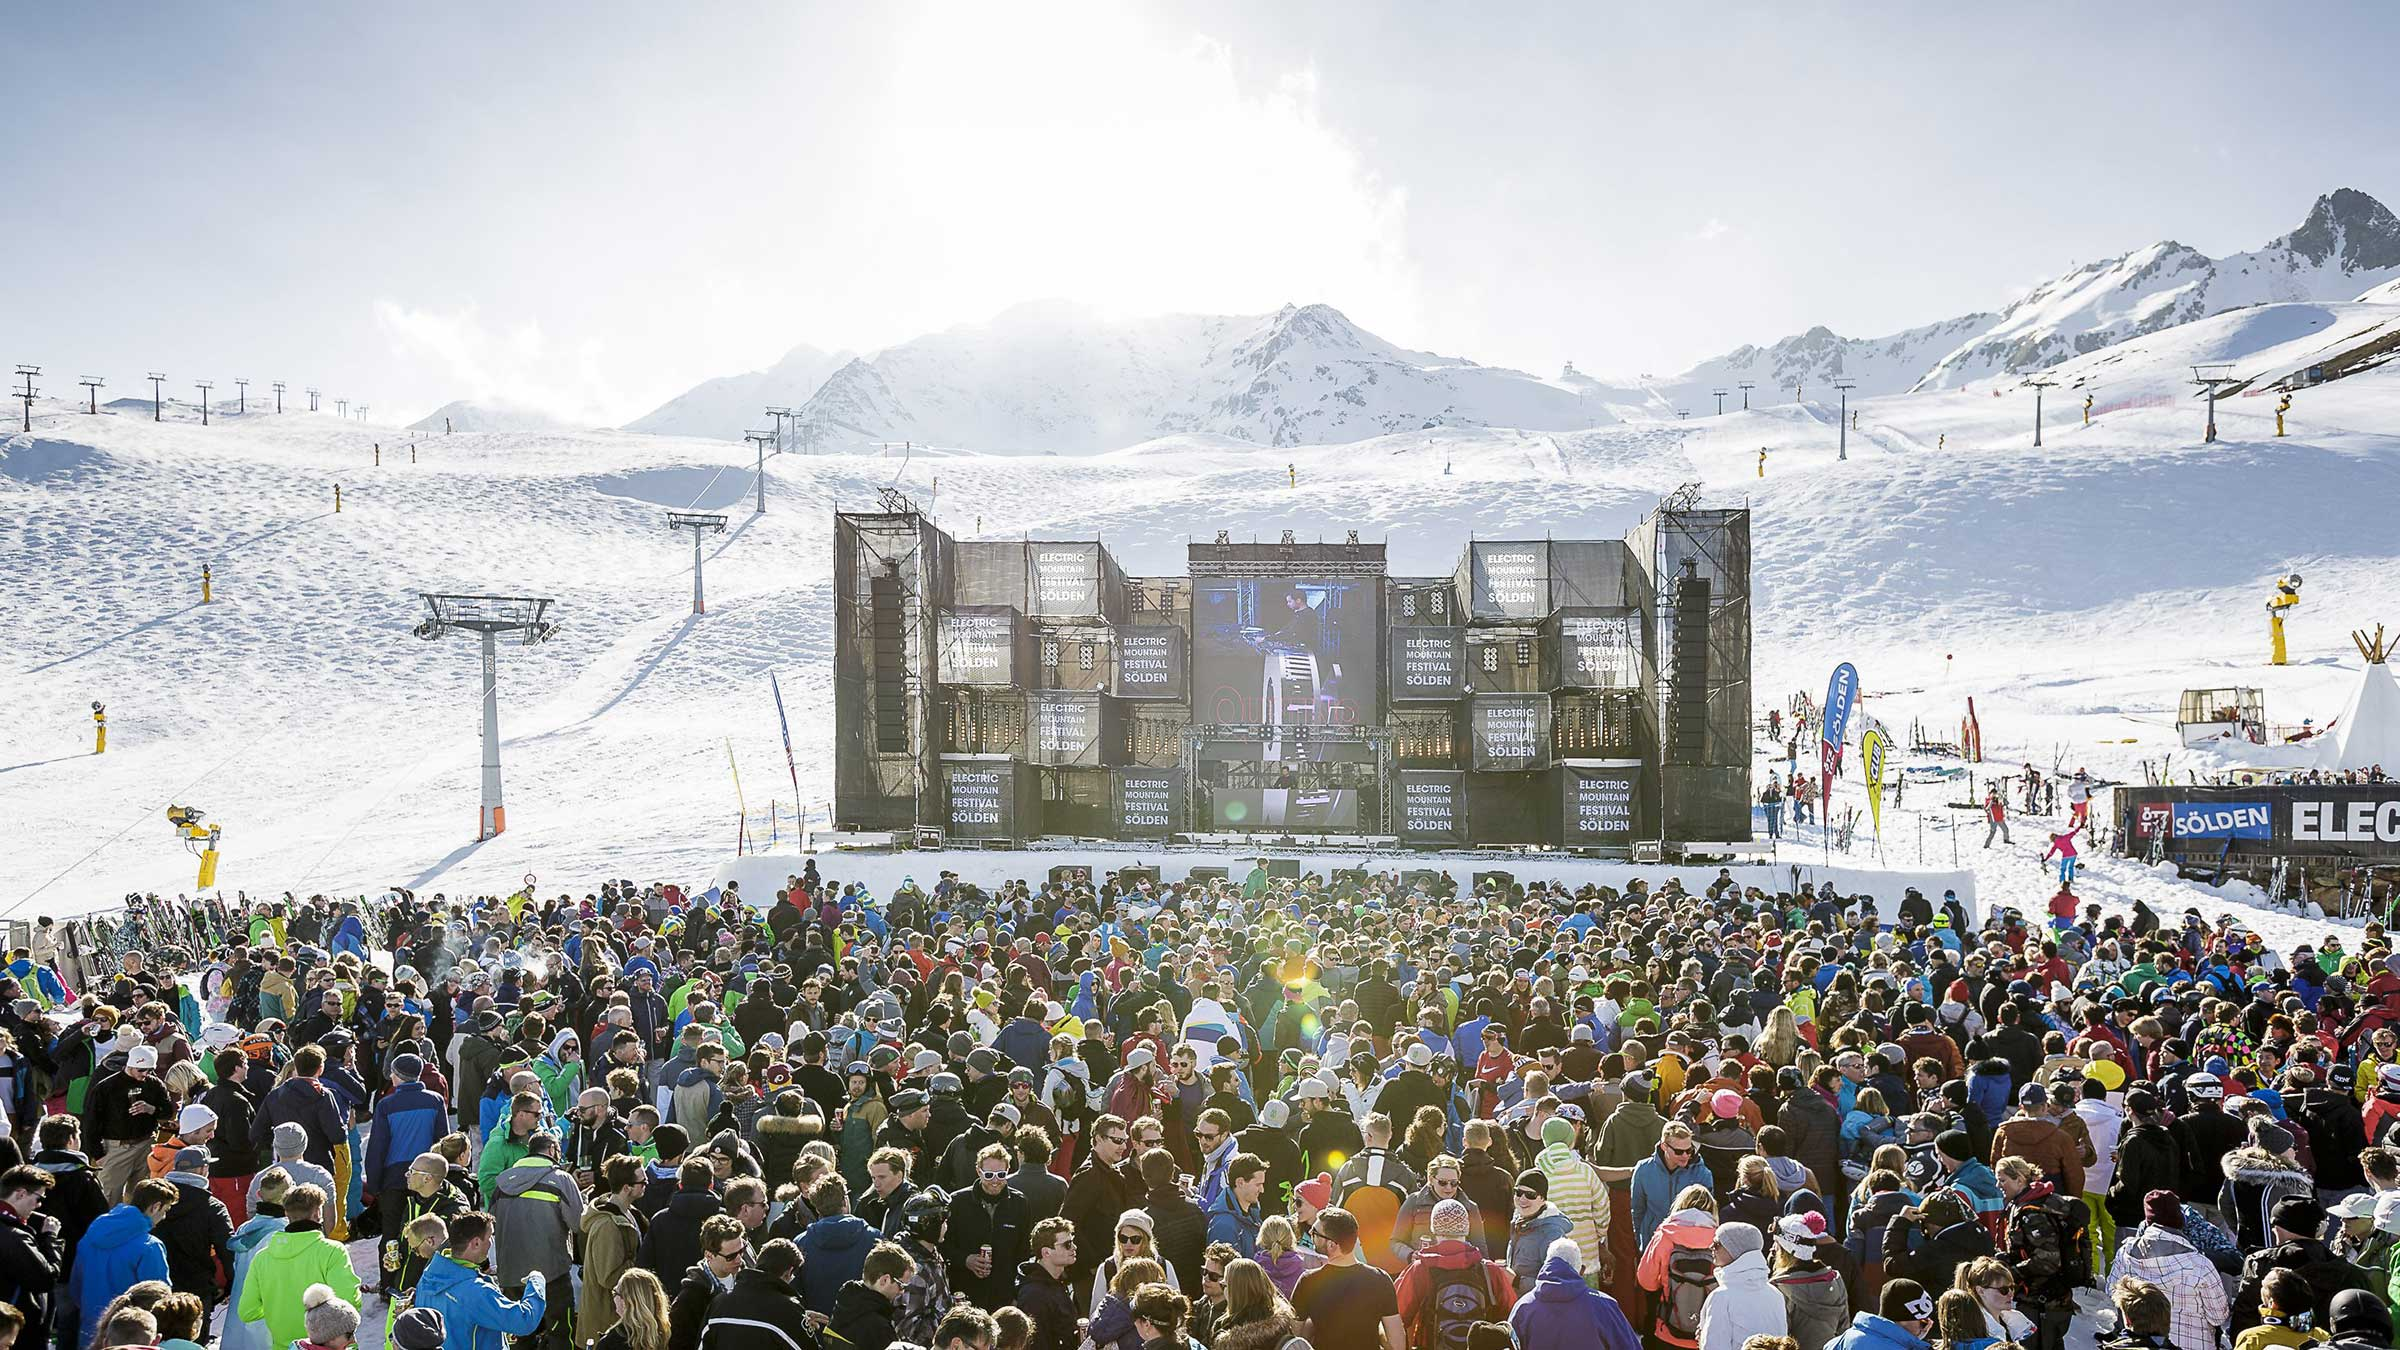 Satte Beats & Sonnenschein: Das war das Electric Mountain Festival 2017